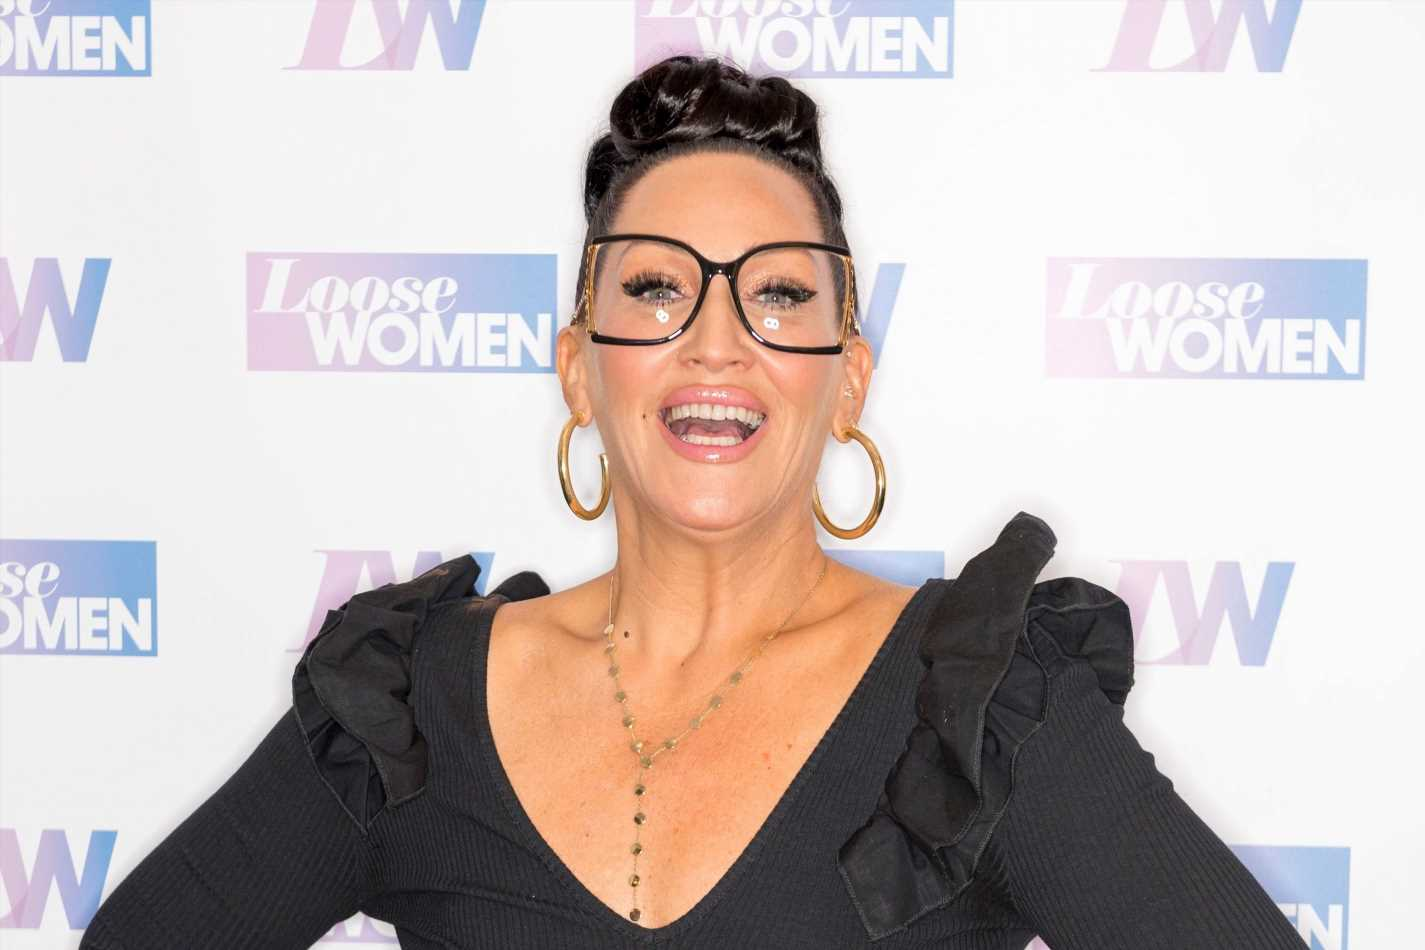 Strictly's Michelle Visage reveals she 'doesn't believe in gendering' and thinks of herself as a drag queen